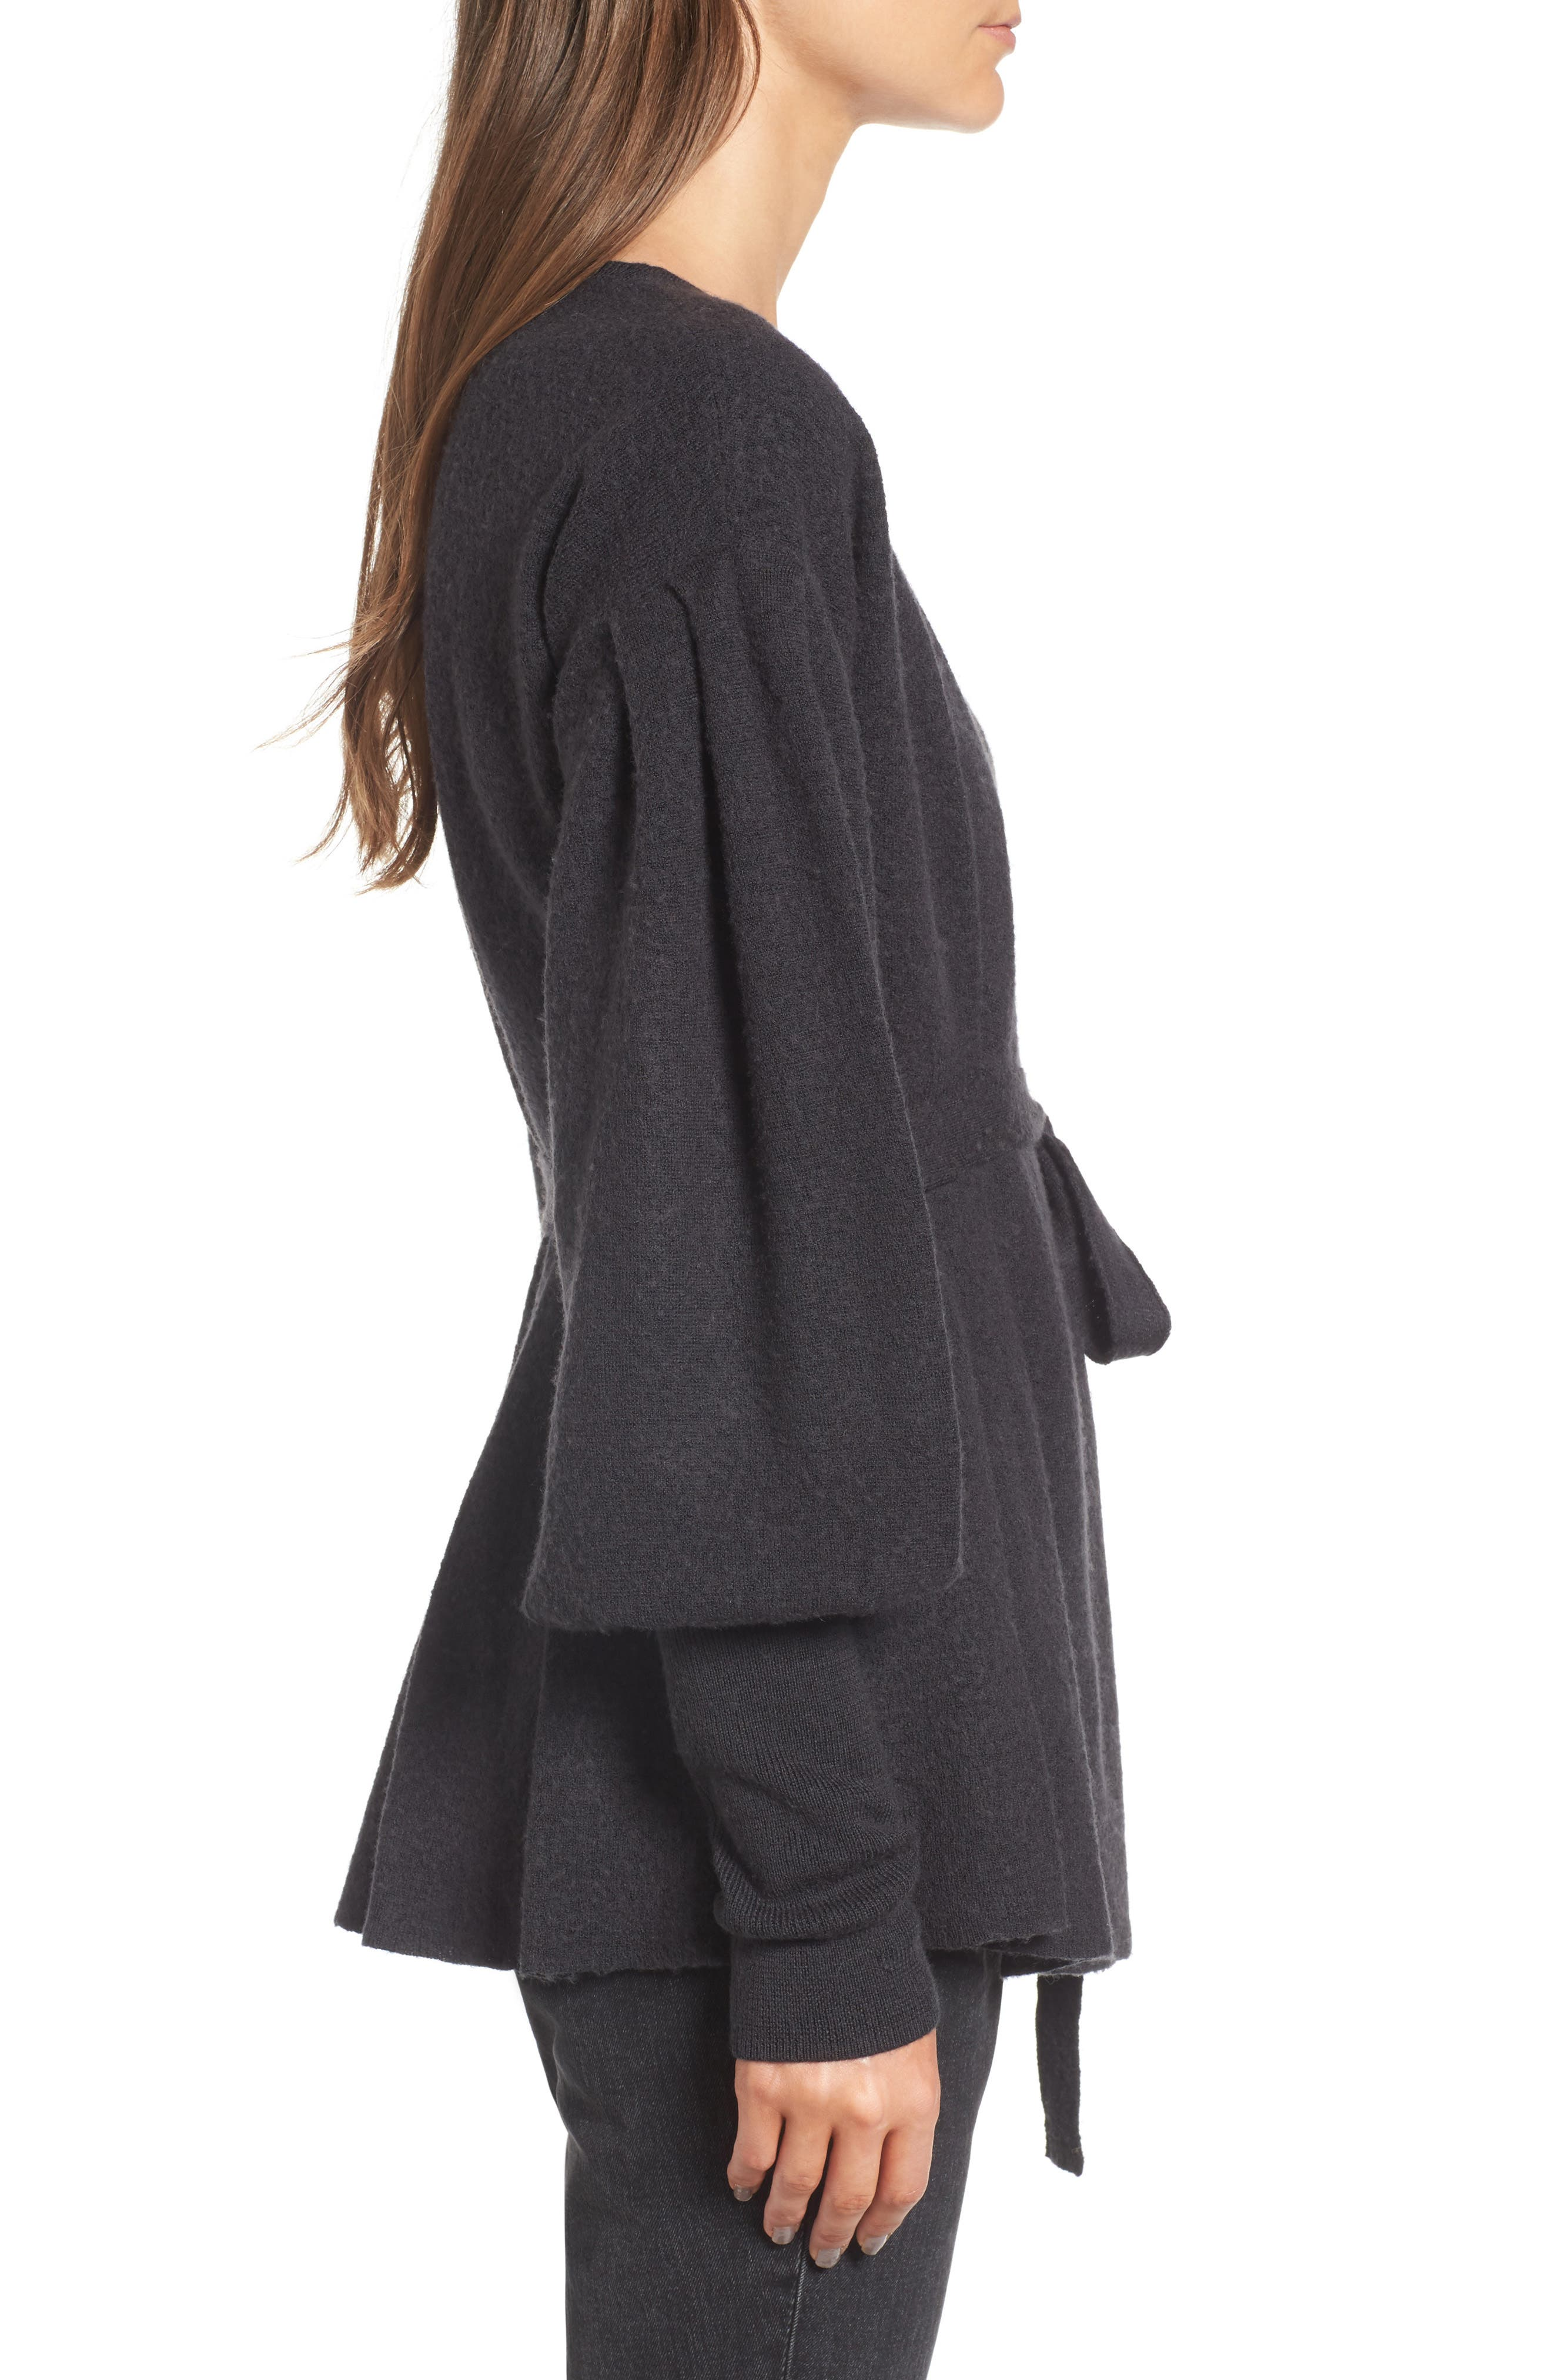 x Something Navy Wrap Cardigan,                             Alternate thumbnail 4, color,                             Grey Dark Charcoal Heather